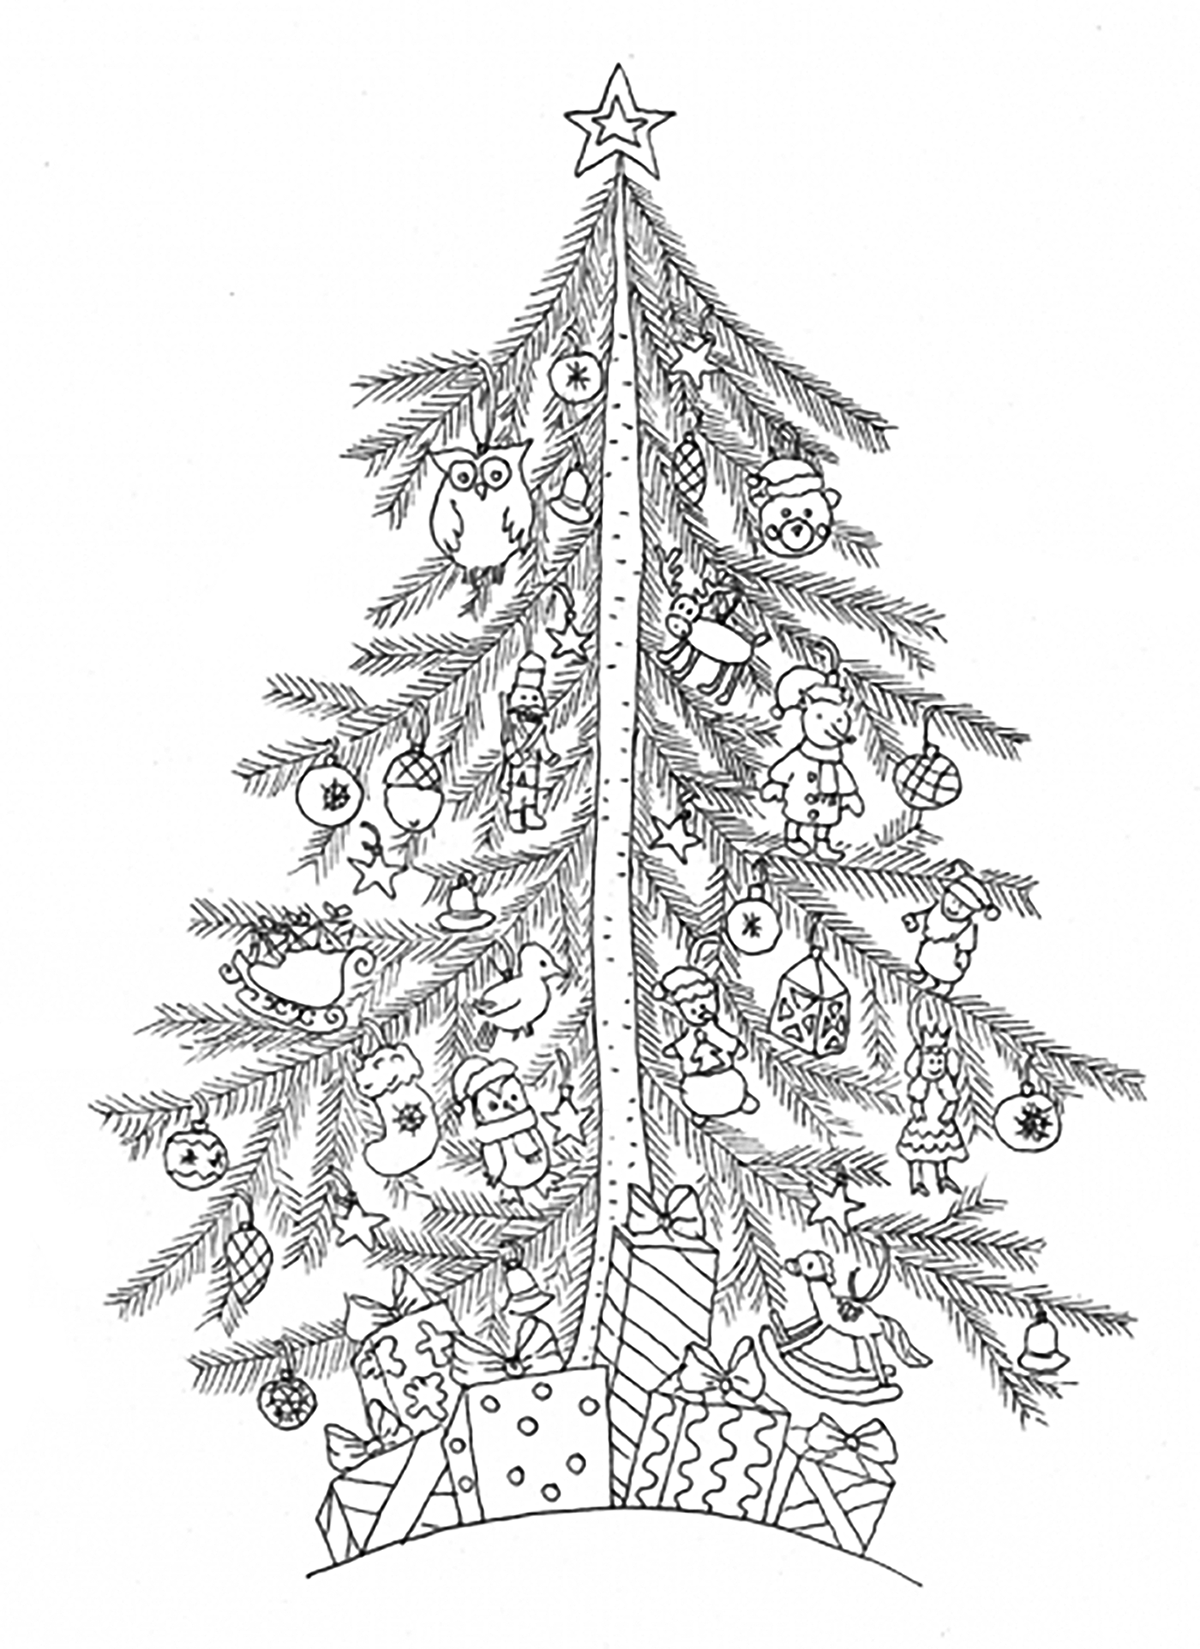 2016 Christmas Advent calendar - Coloring pages for adults ...